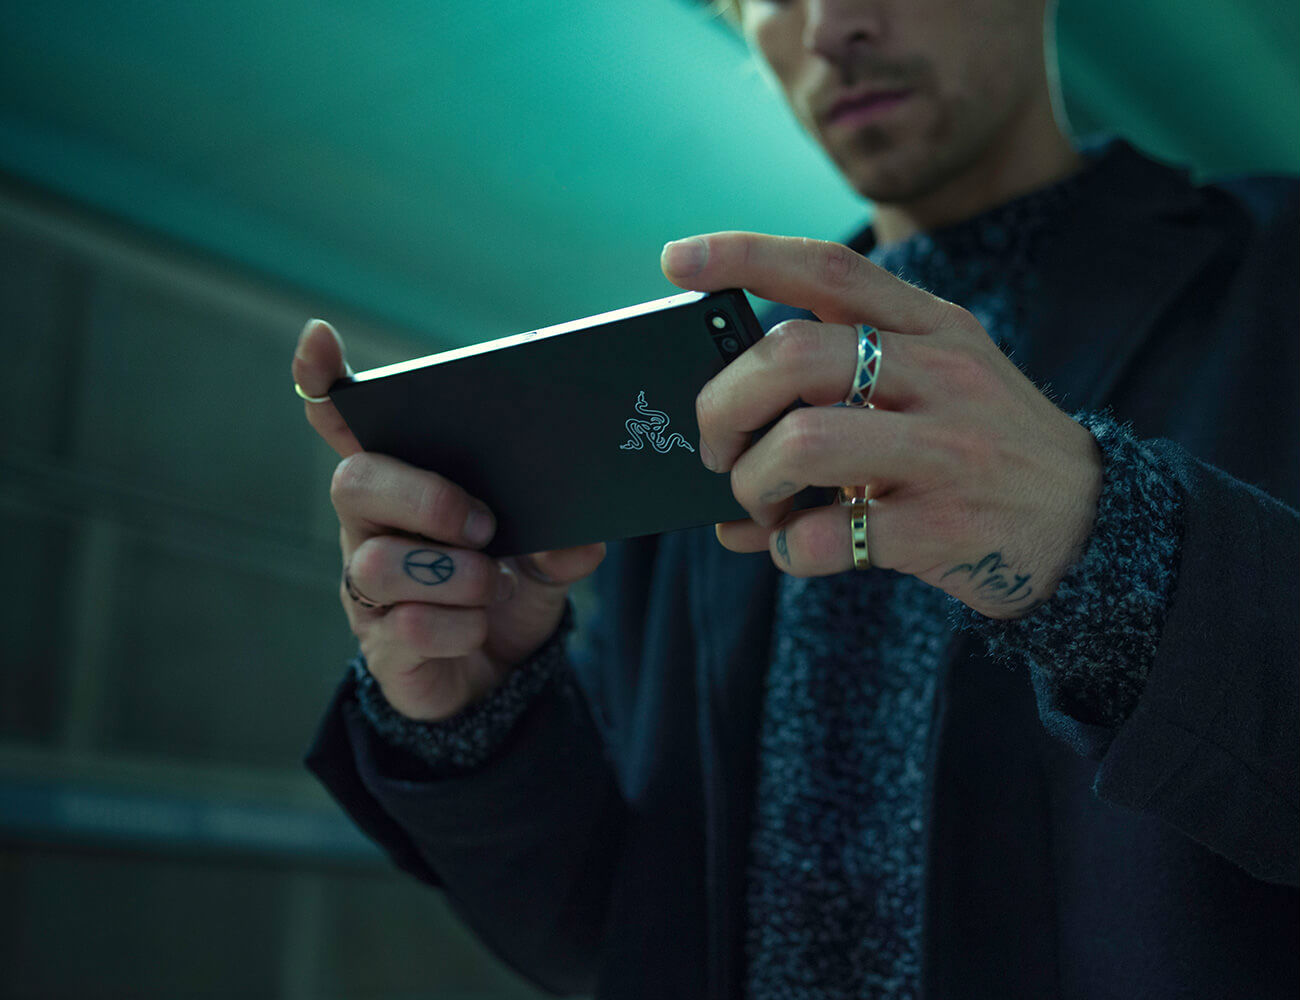 Razer Phone – Smartphone for Gamers